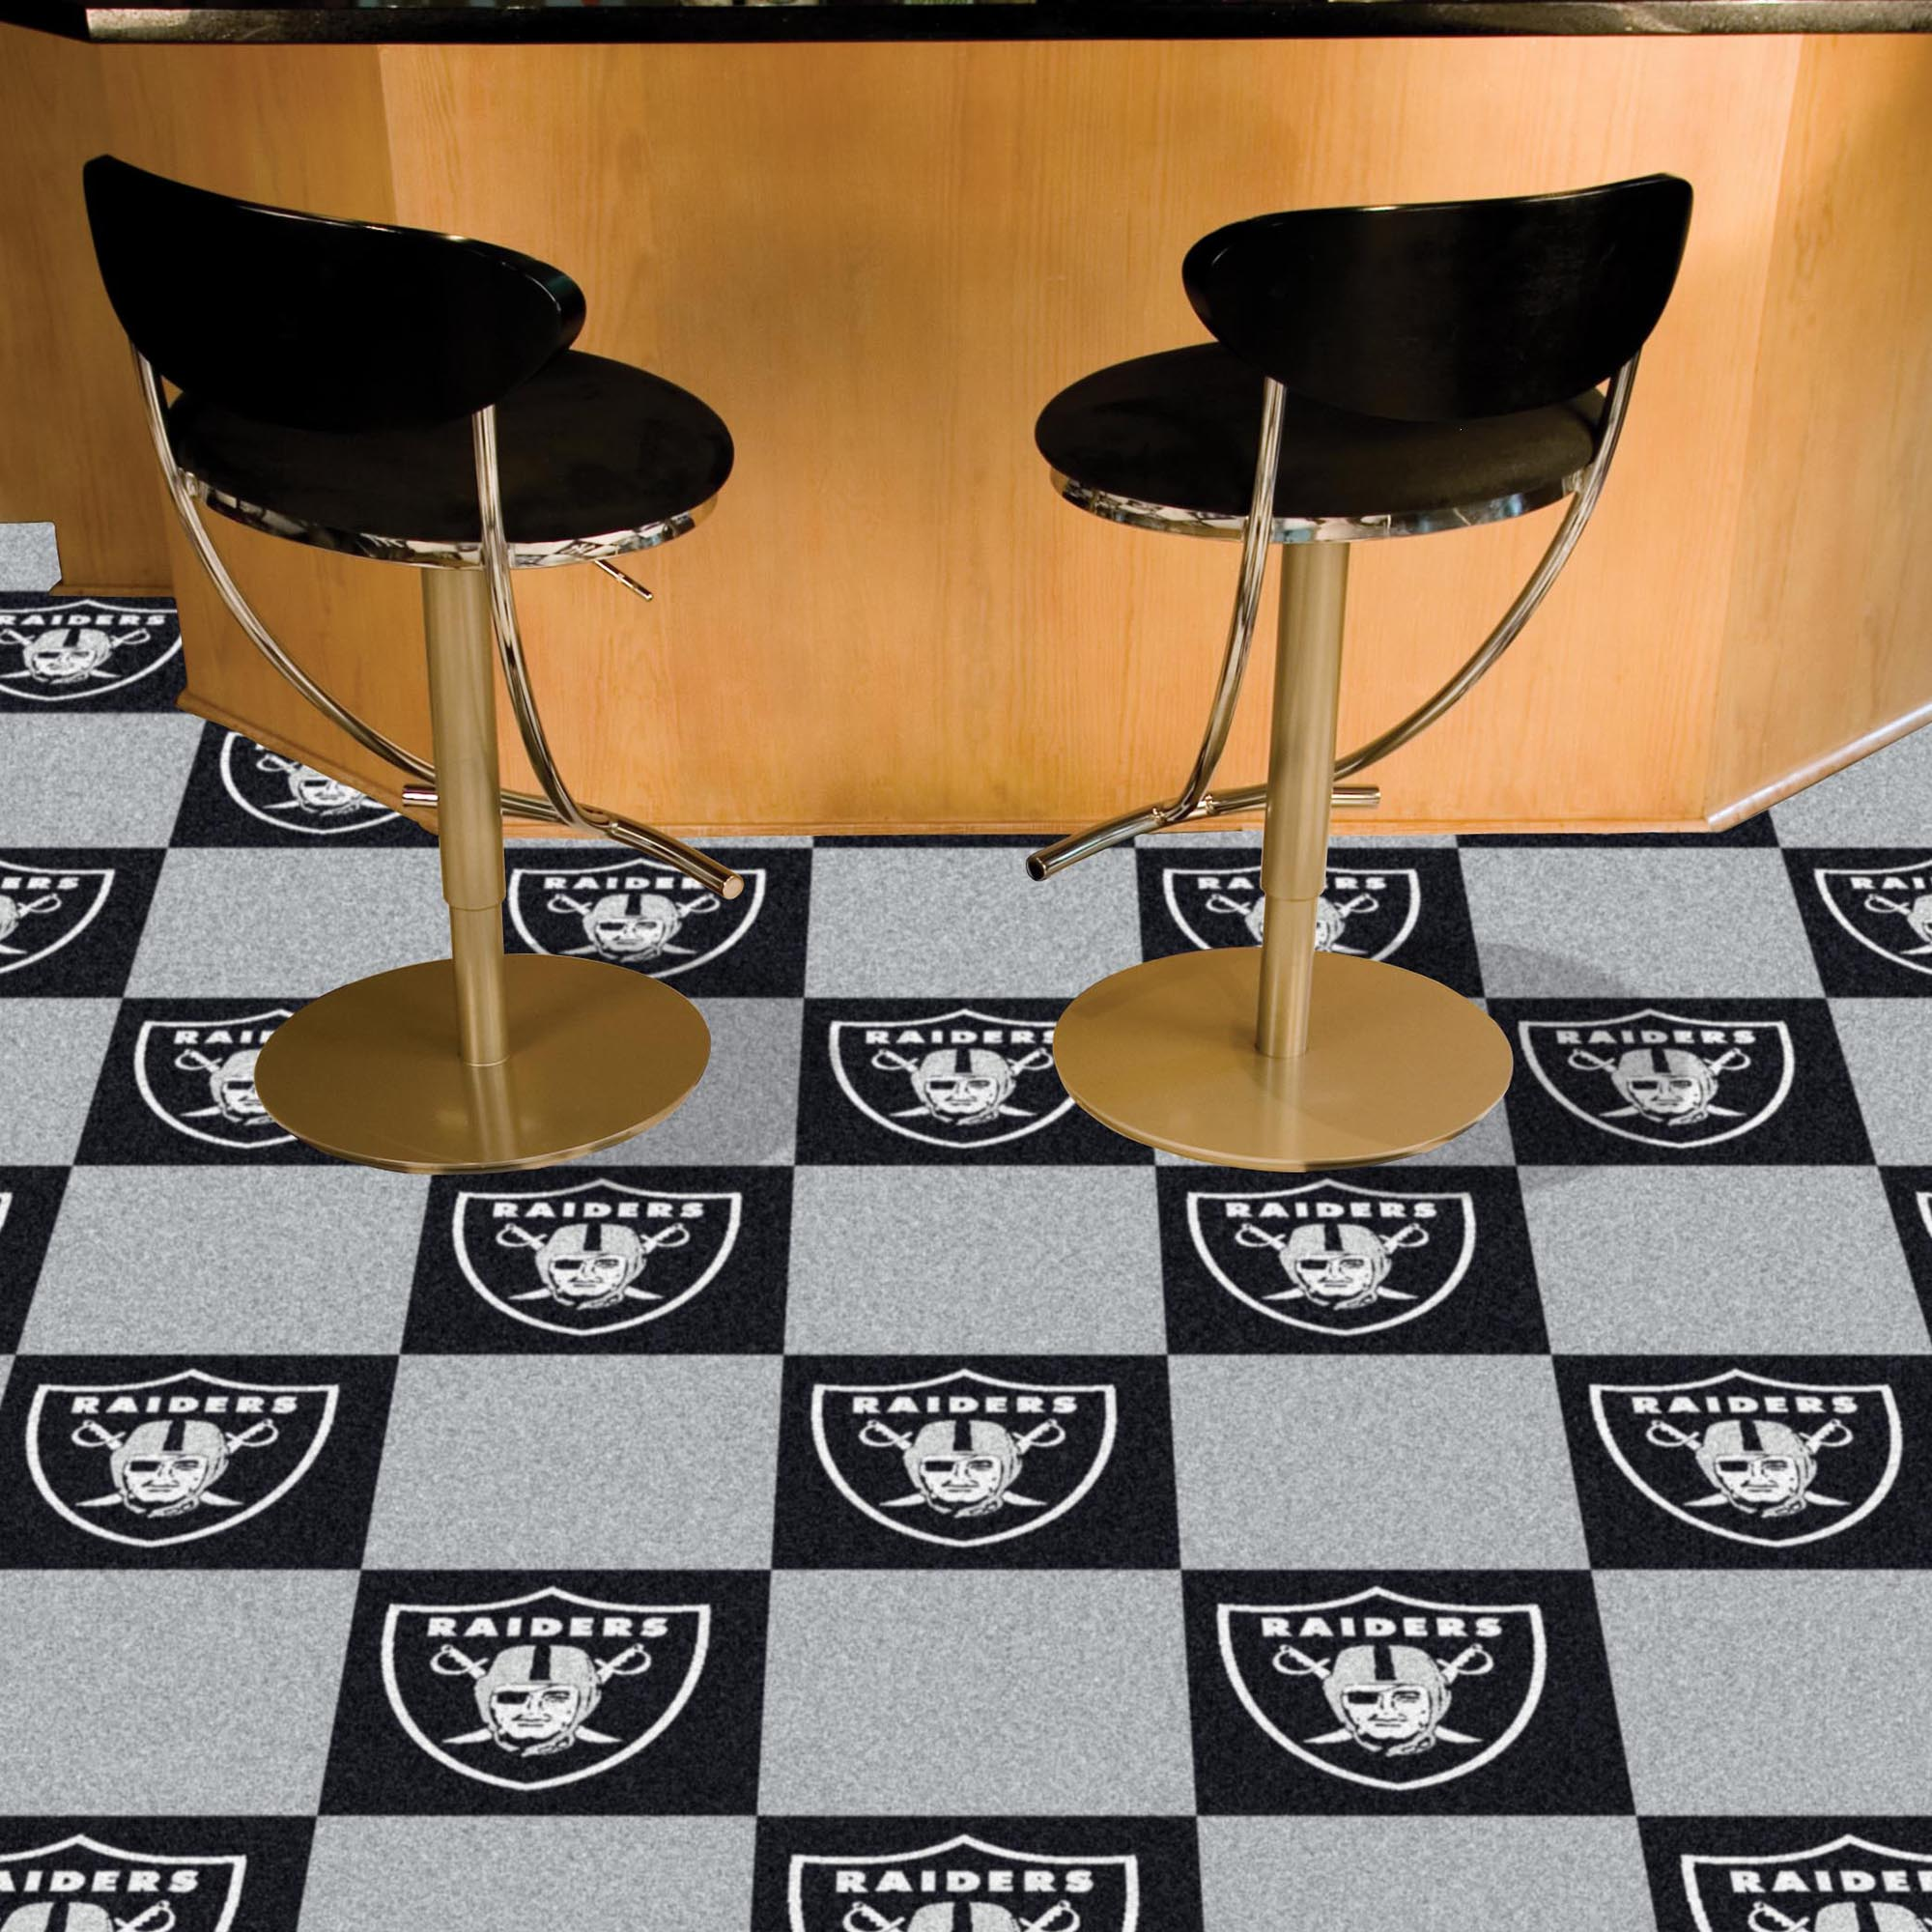 Oakland Raiders Carpet Tiles 18x18 in.